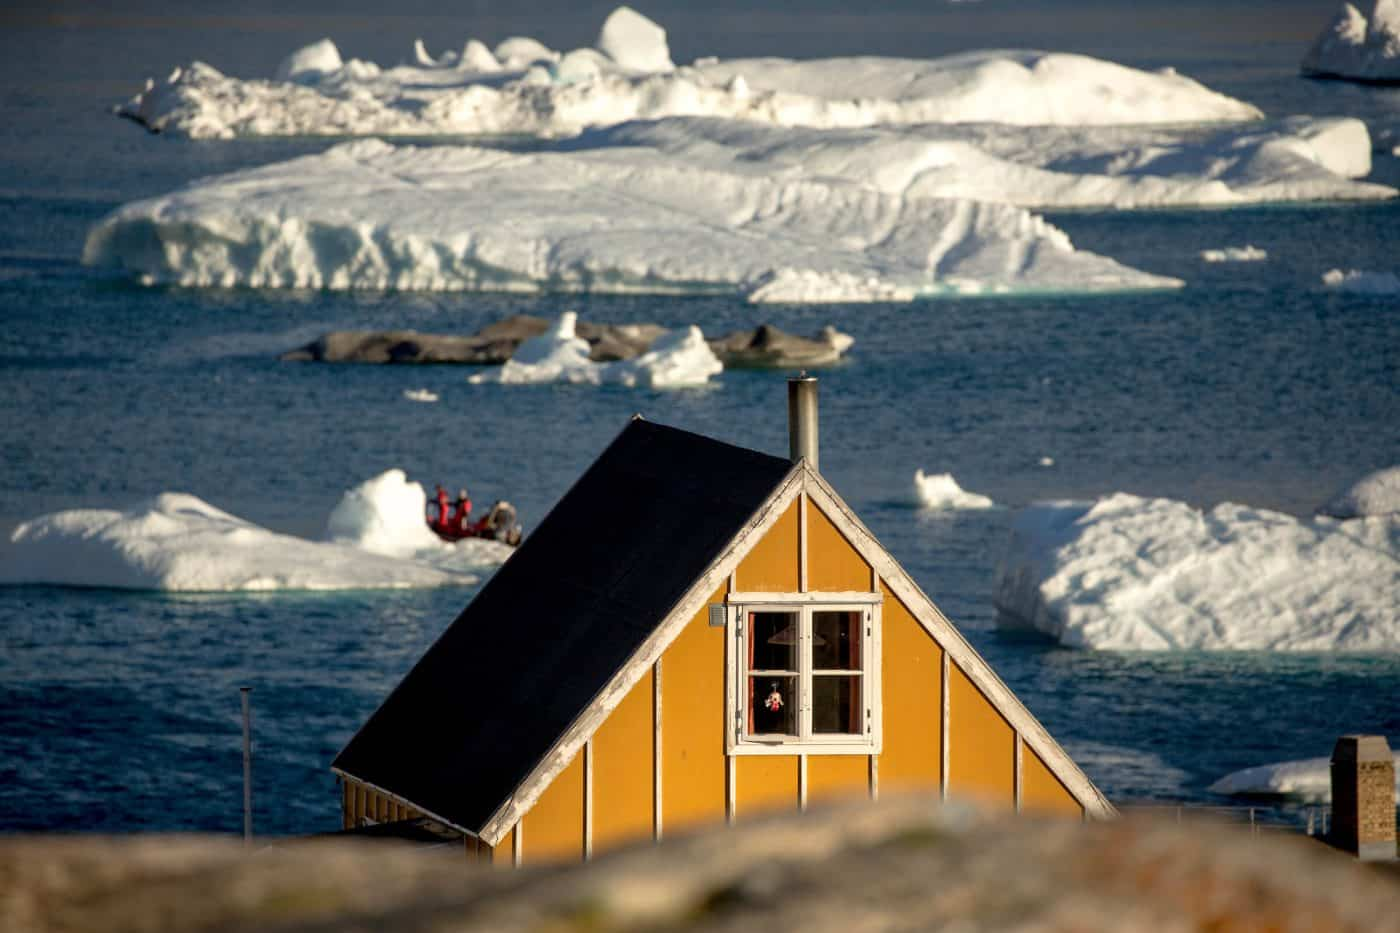 A house and icebergs in Ukkusissat in Greenland. Photo by Mads Pihl